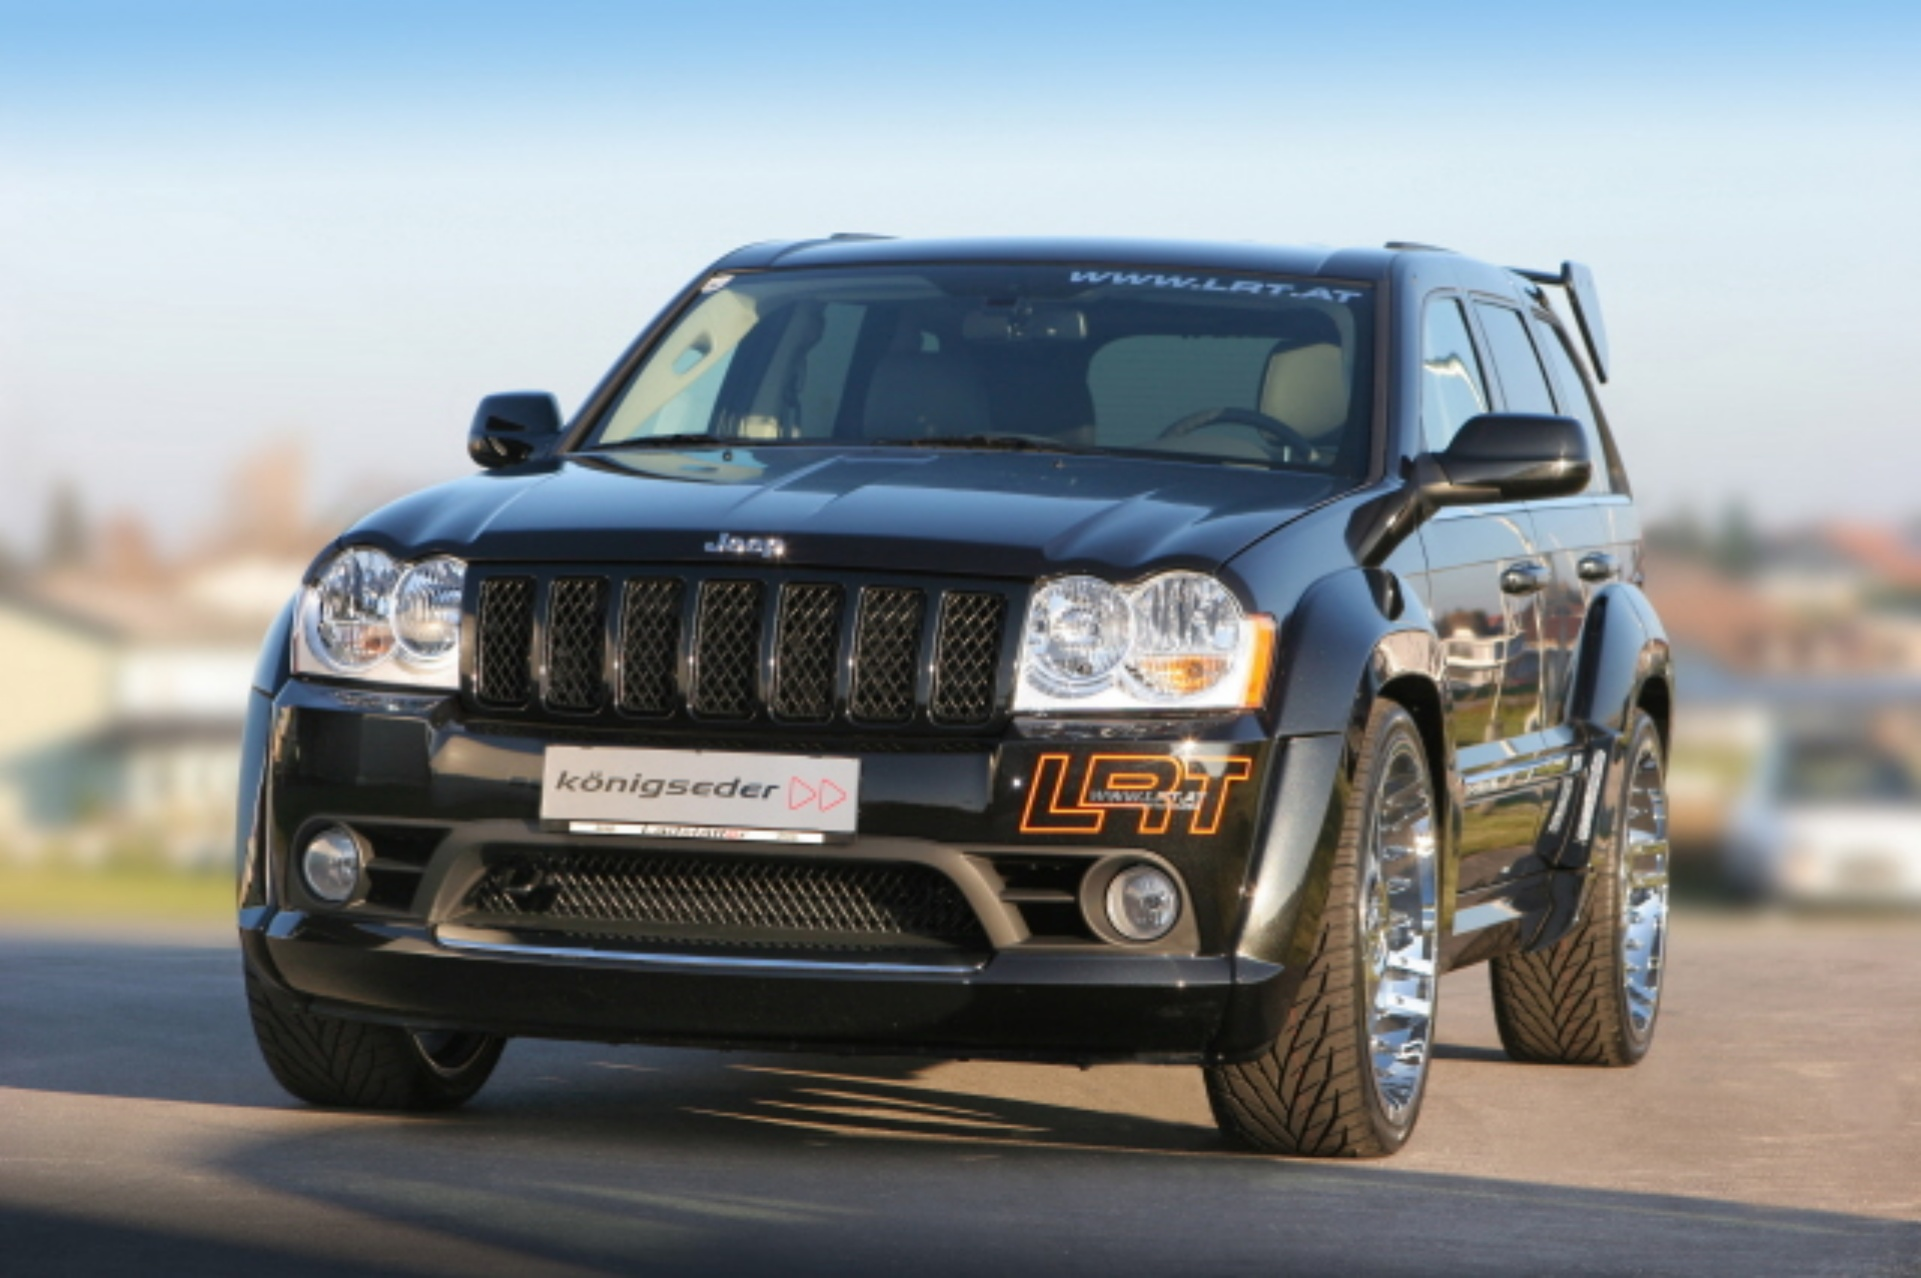 Lifted Jeep Srt8 >> GRAND CHEROKEE - Grand Cherokee tuning - SUV Tuning